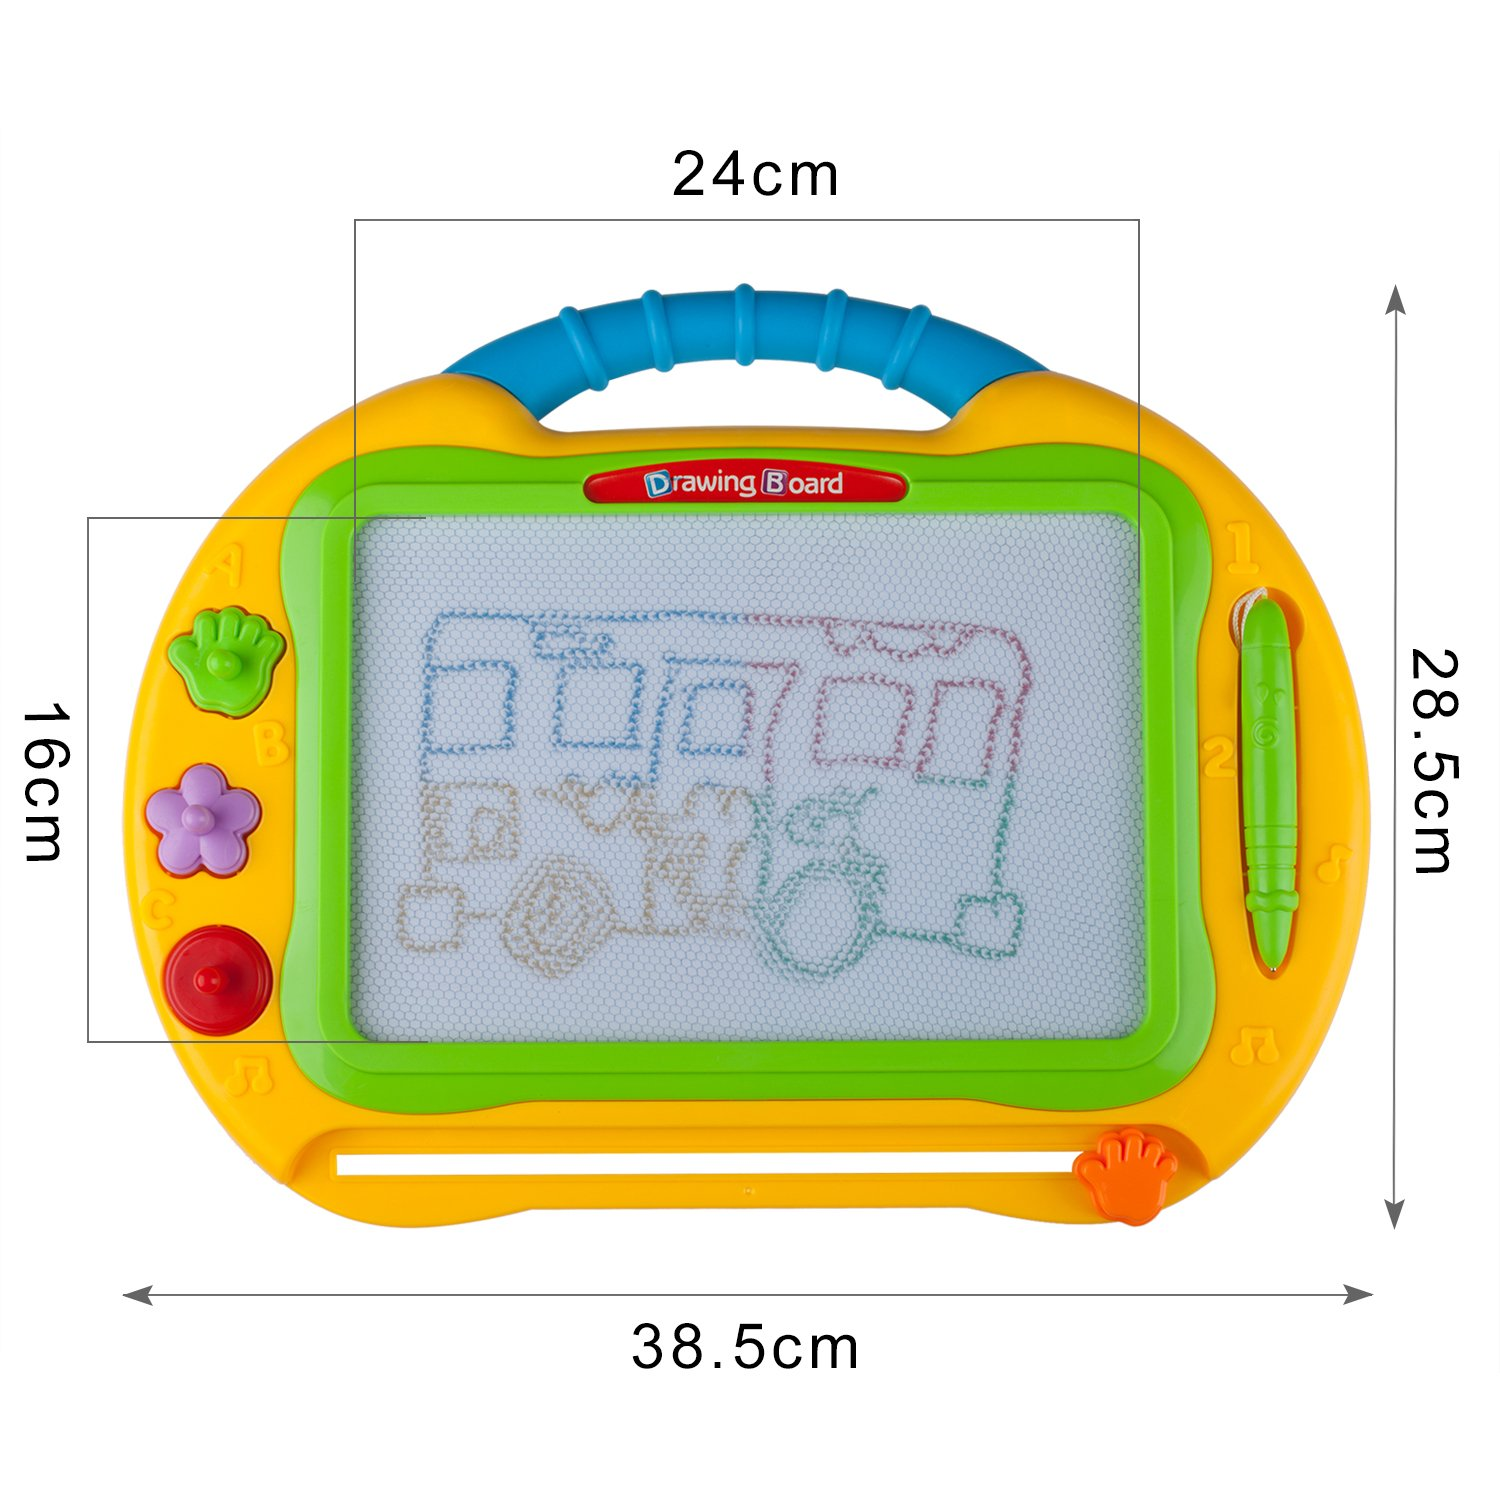 ikidsislands IKS99Y [Travel Size] Color Magnetic Drawing Board for Kids & Toddlers - Non Toxic Large Magna Sketch Doodle Educational Toy for Boys, with 1 Pen & 2 Stamps (Yellow) by ikidsislands (Image #4)